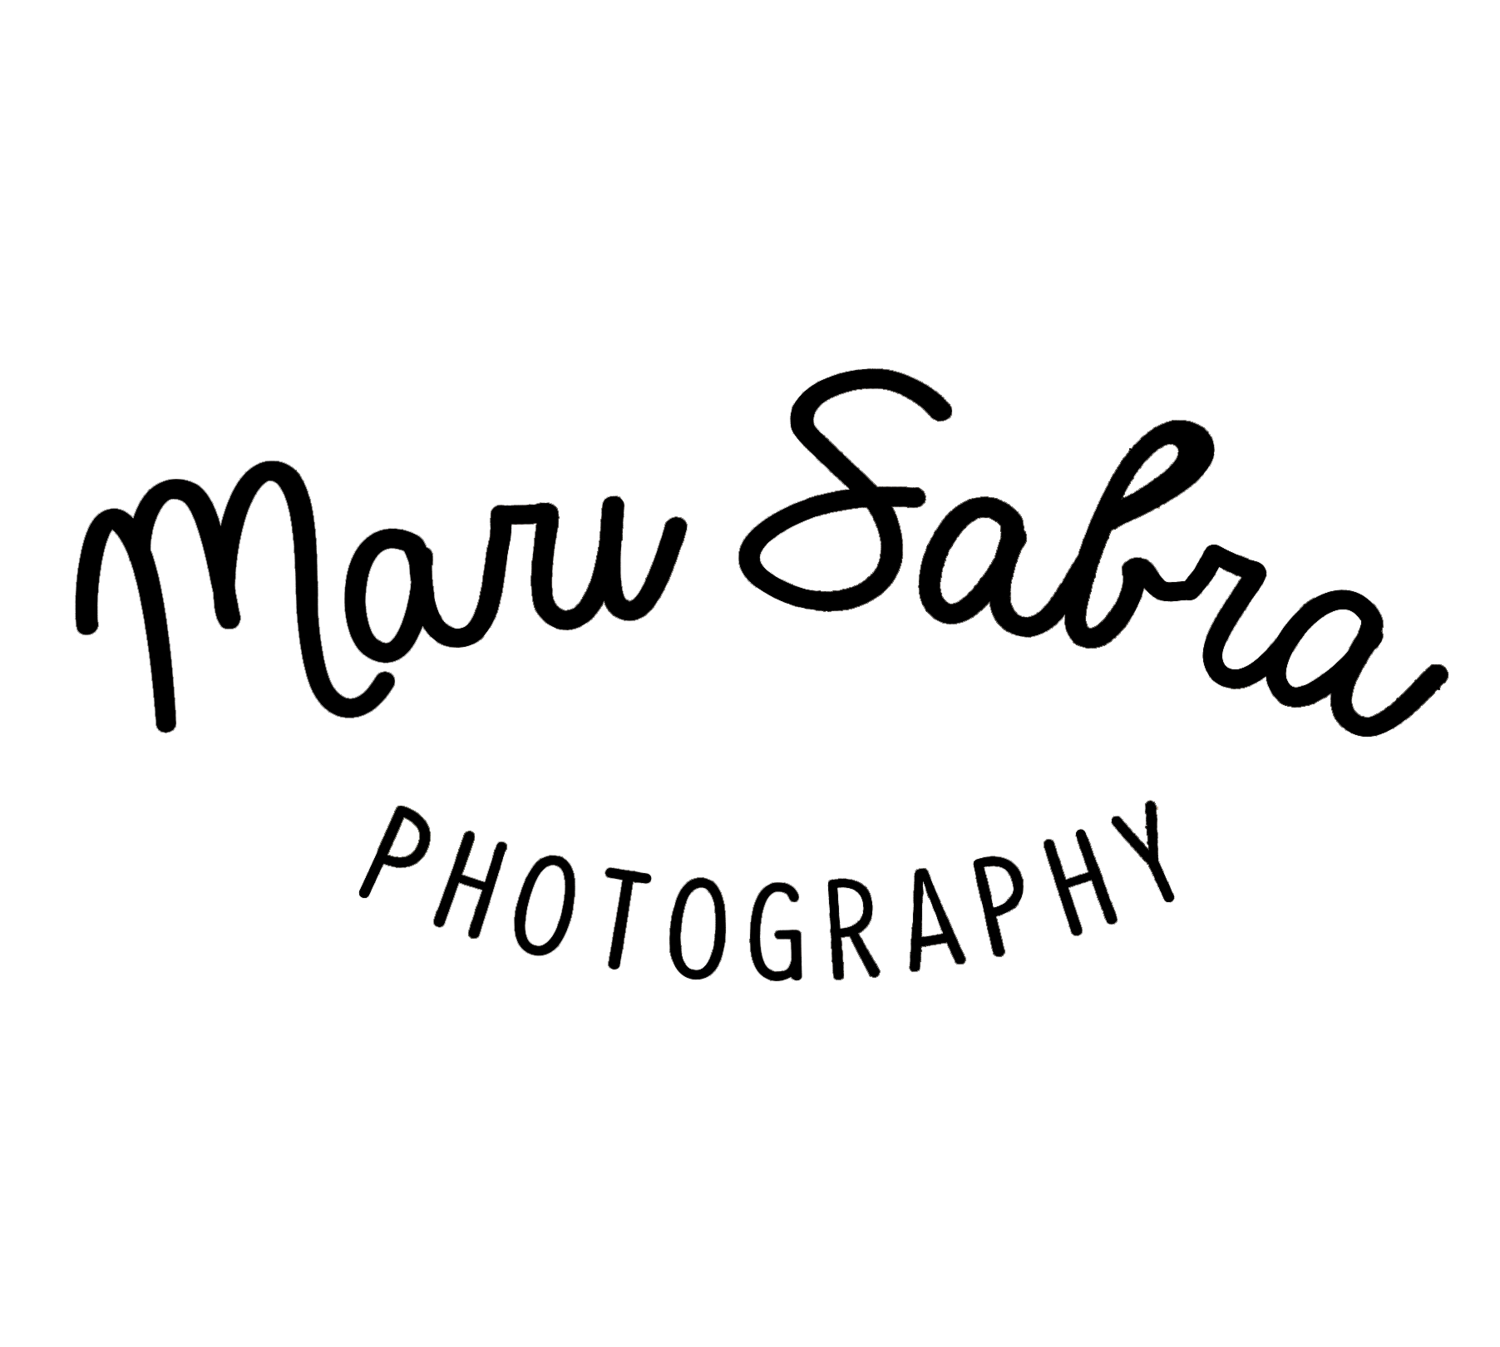 Mari Sabra Photography